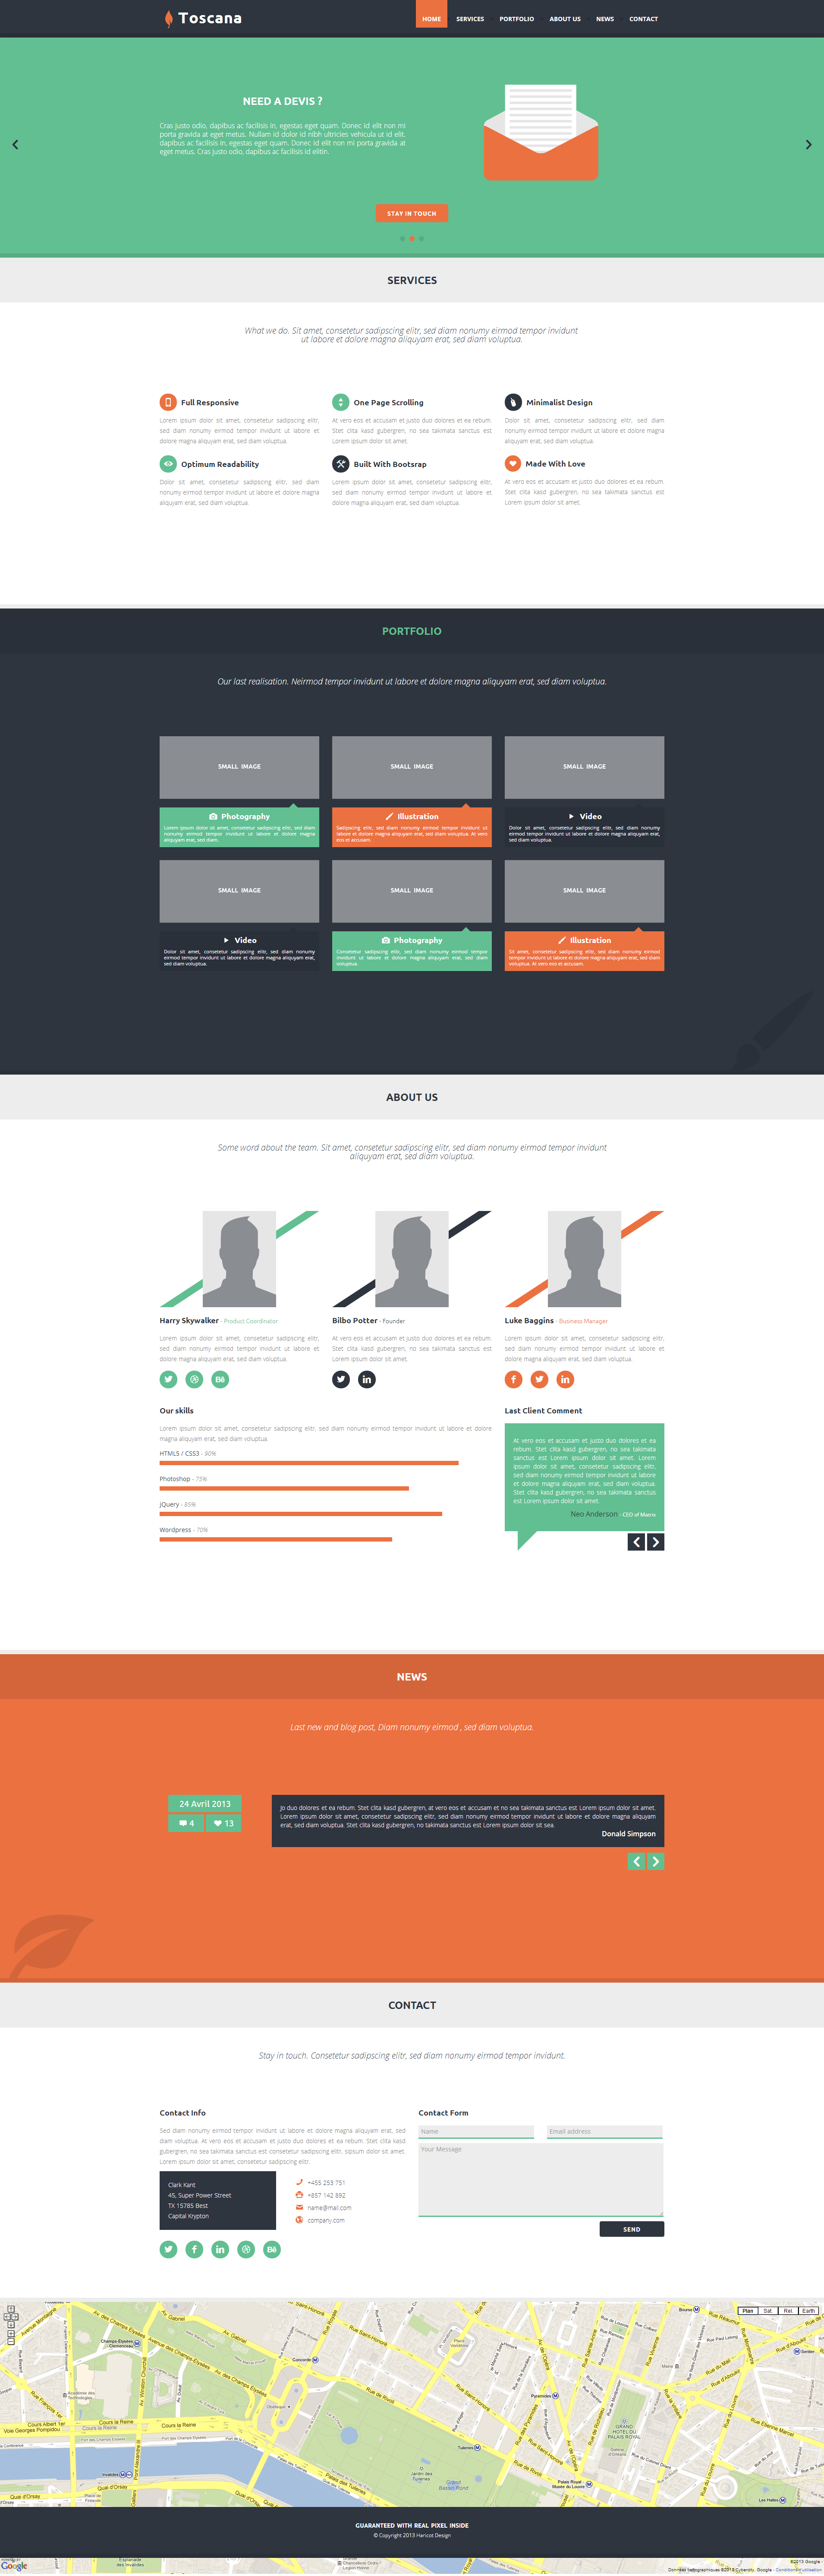 Pin By Seph Brand On Flat Ui Pinterest Template Flat Ui And